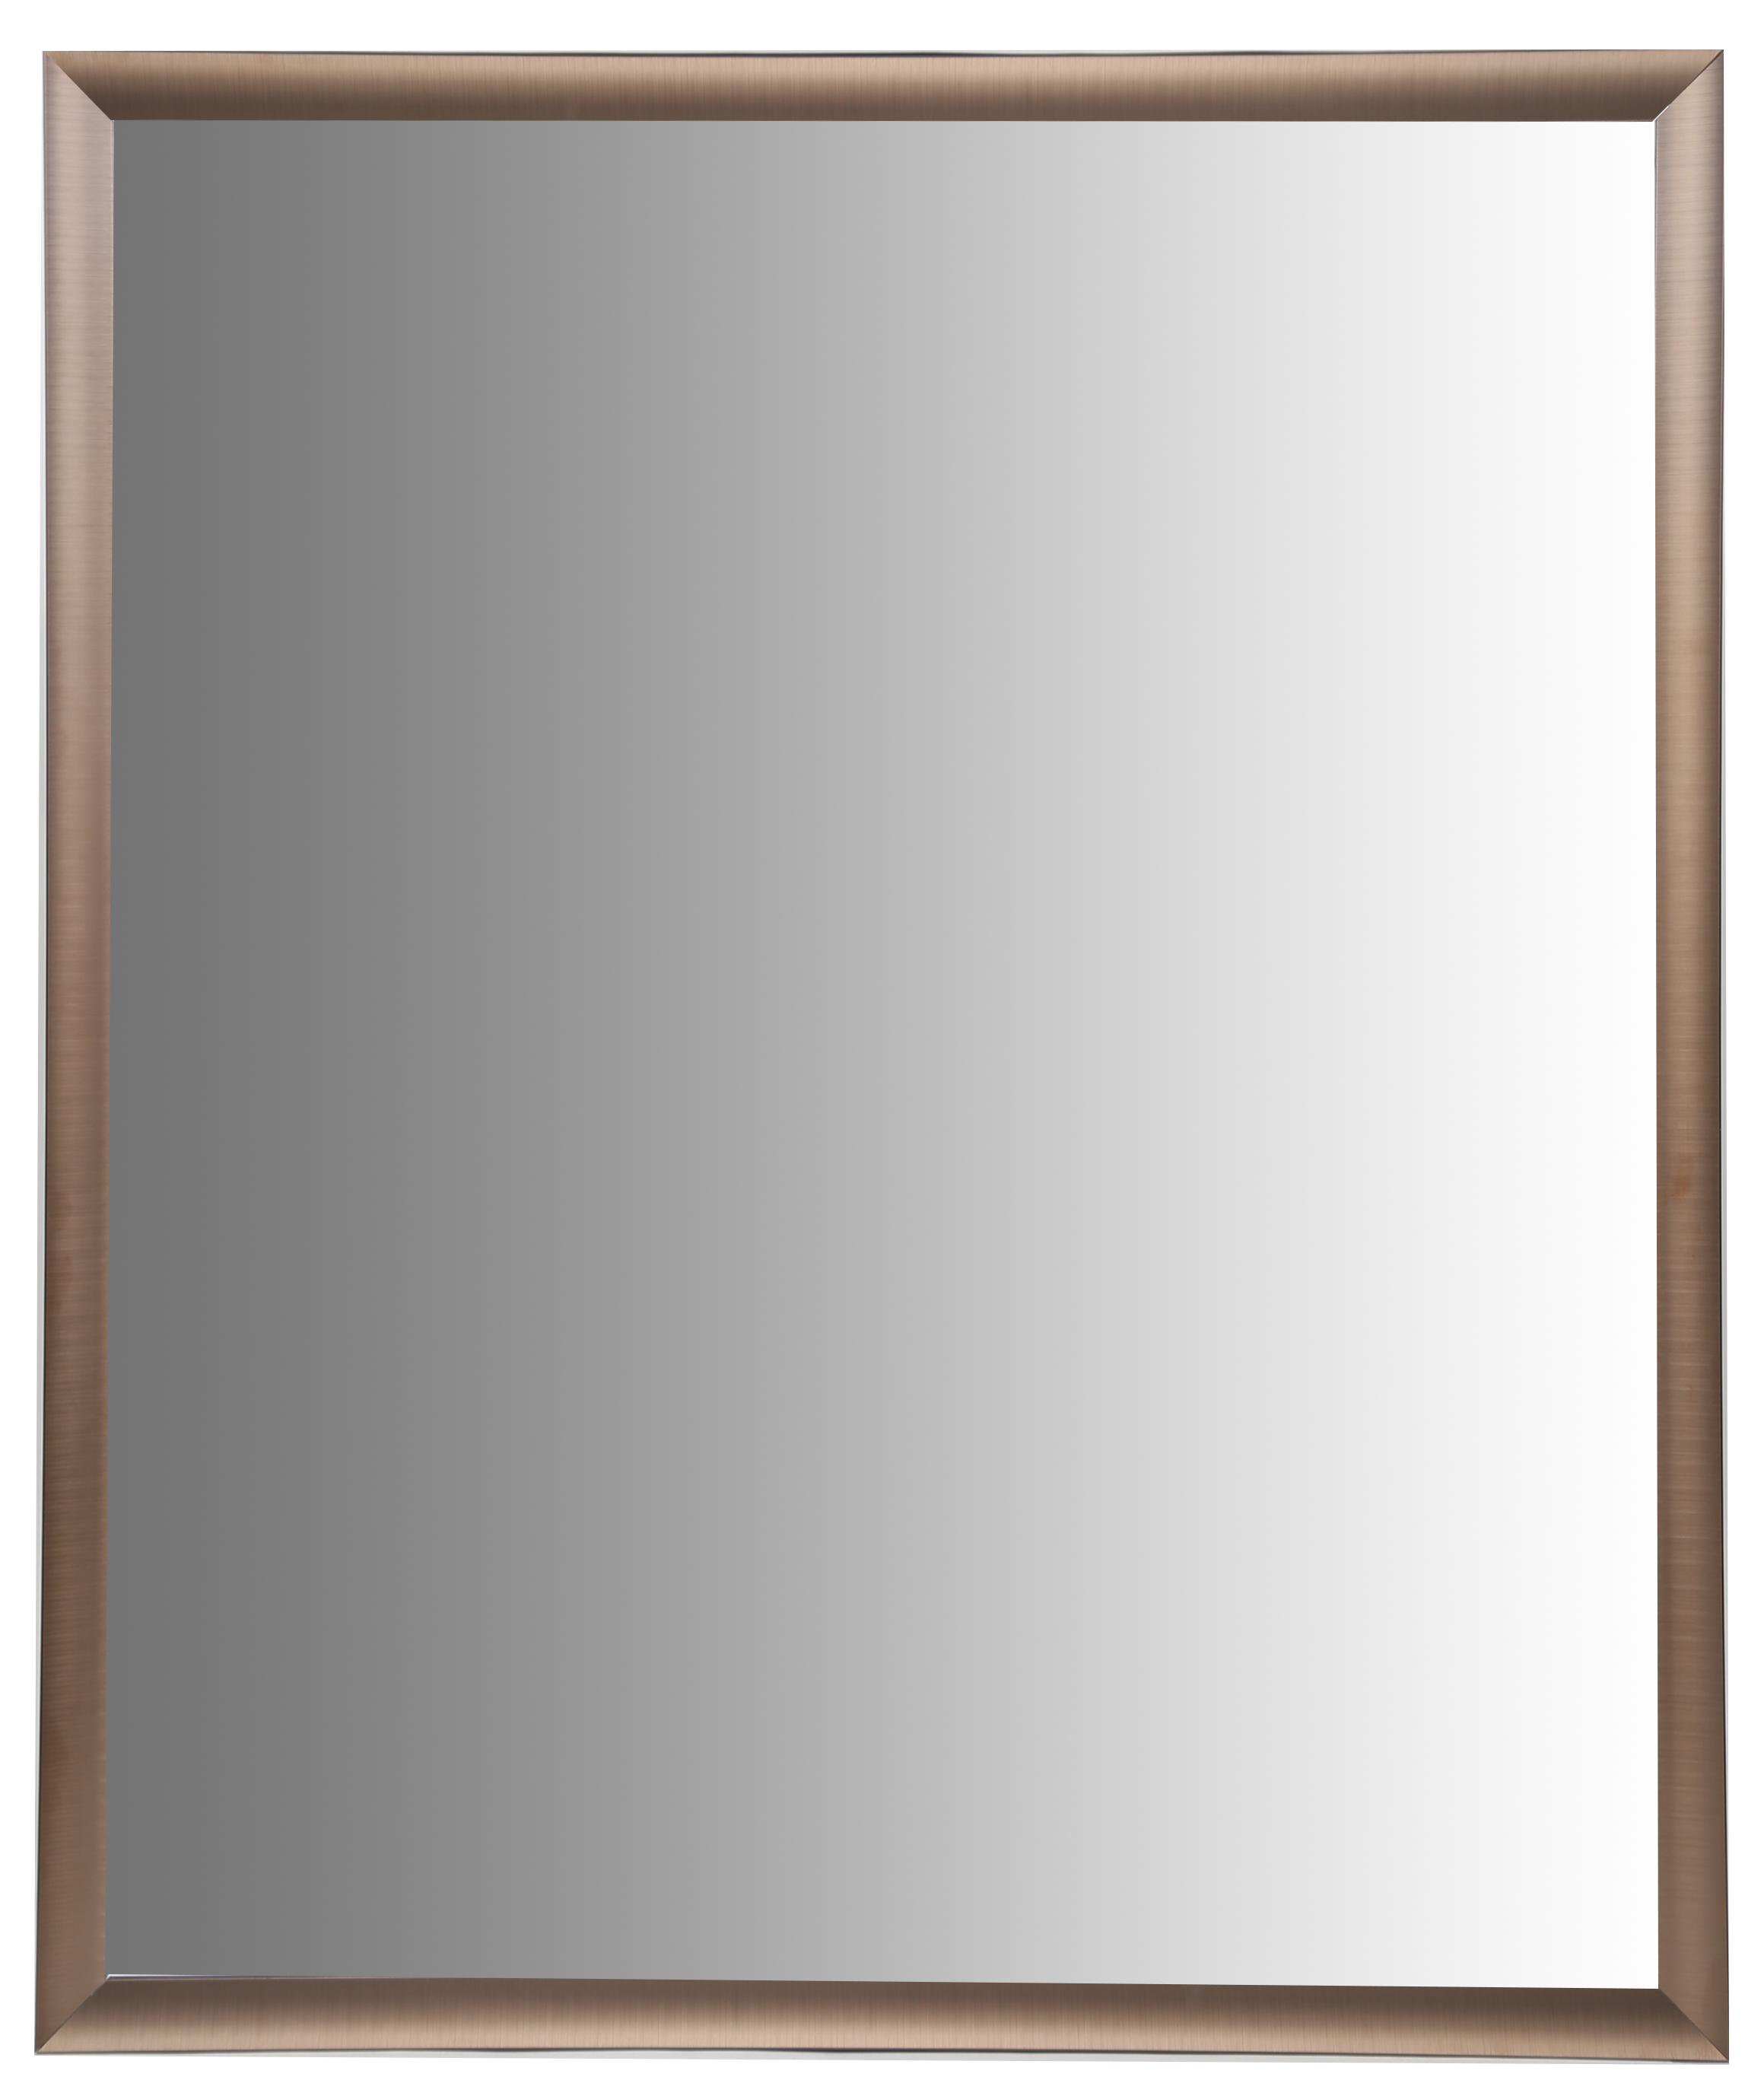 30x36 Brushed Bronze Aluminum Vanity Mirror, with 1 1 4 Wide Moulding by Pinnacle